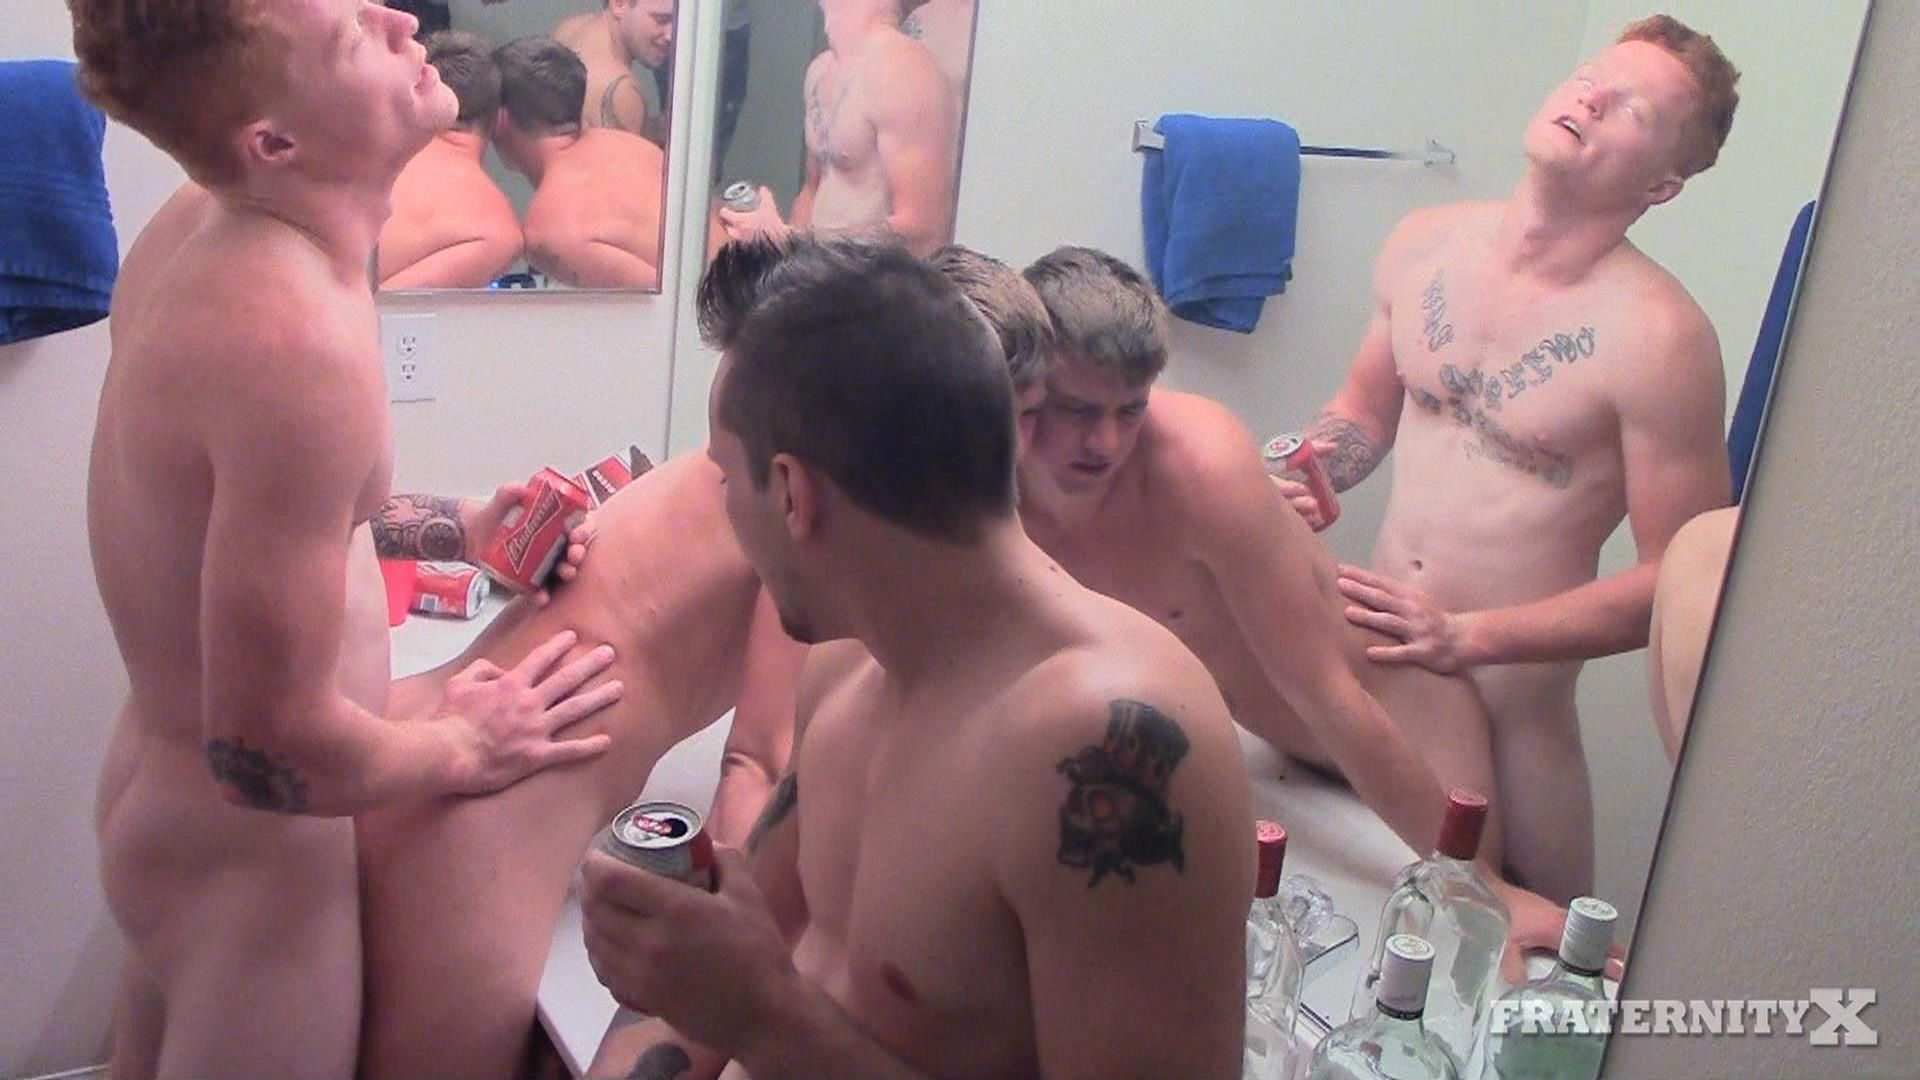 Amateur gay sex video trailers